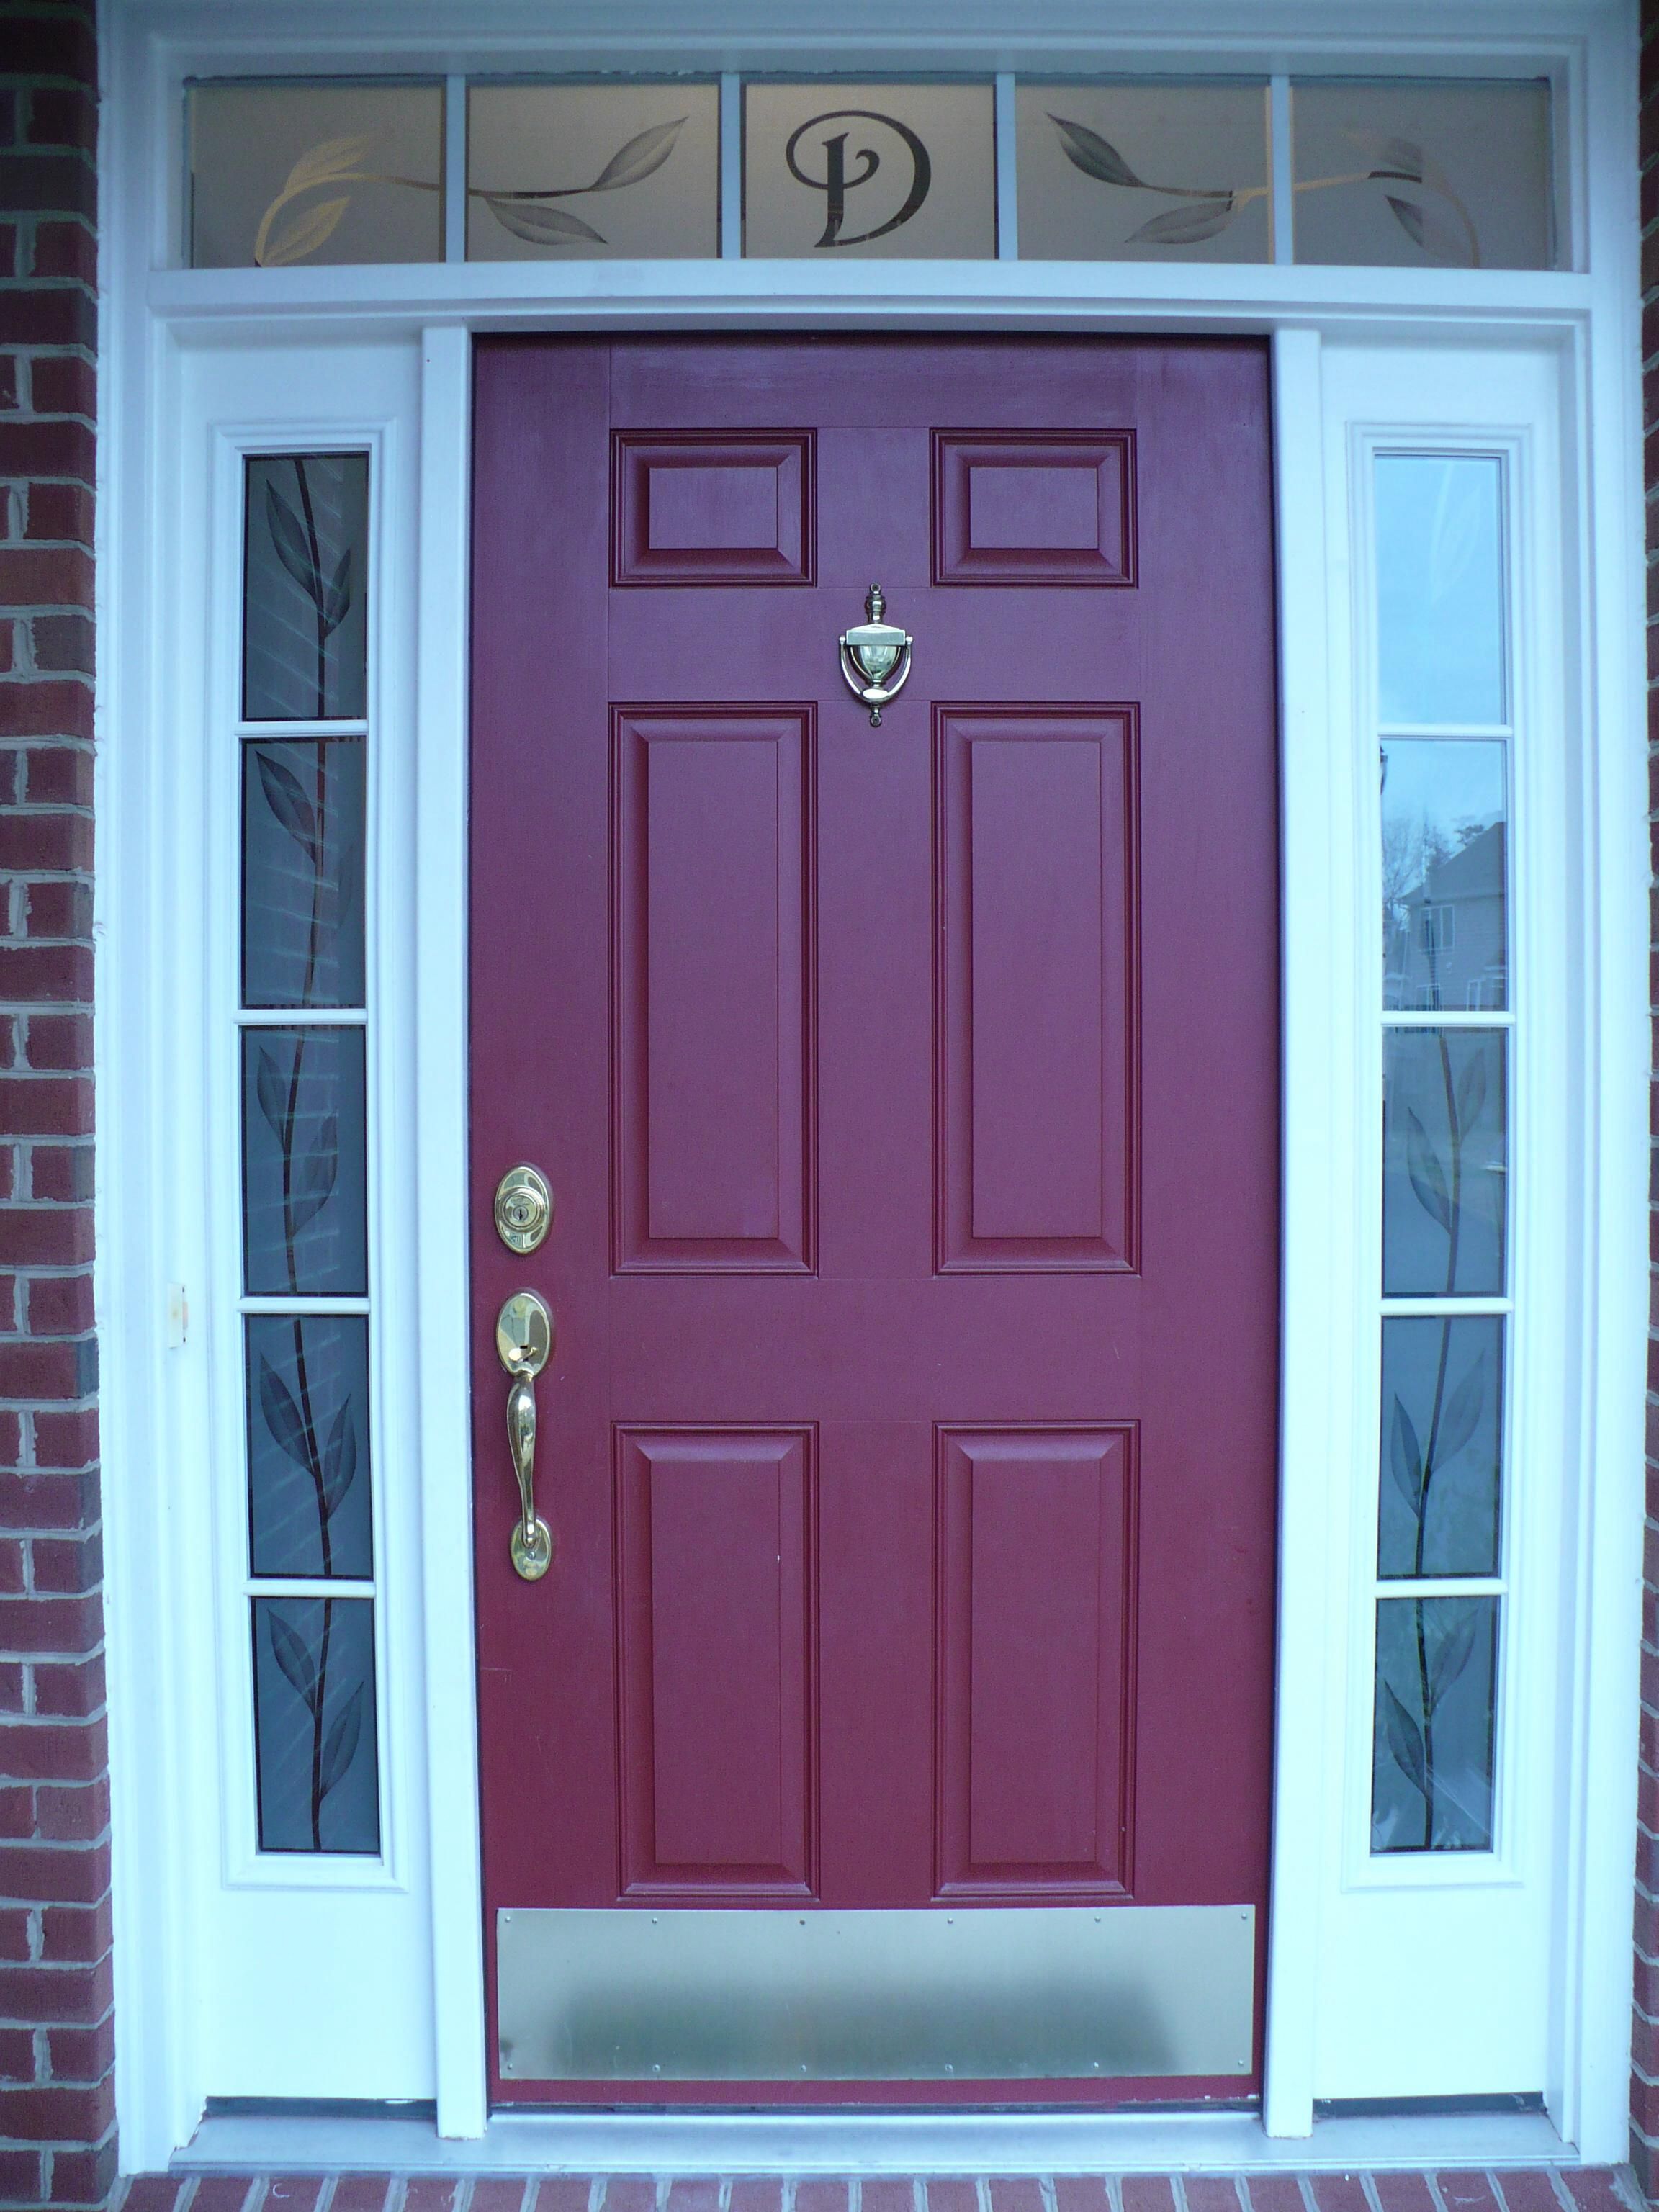 Home entrance door entrance doors with side panels for Entry door with side windows